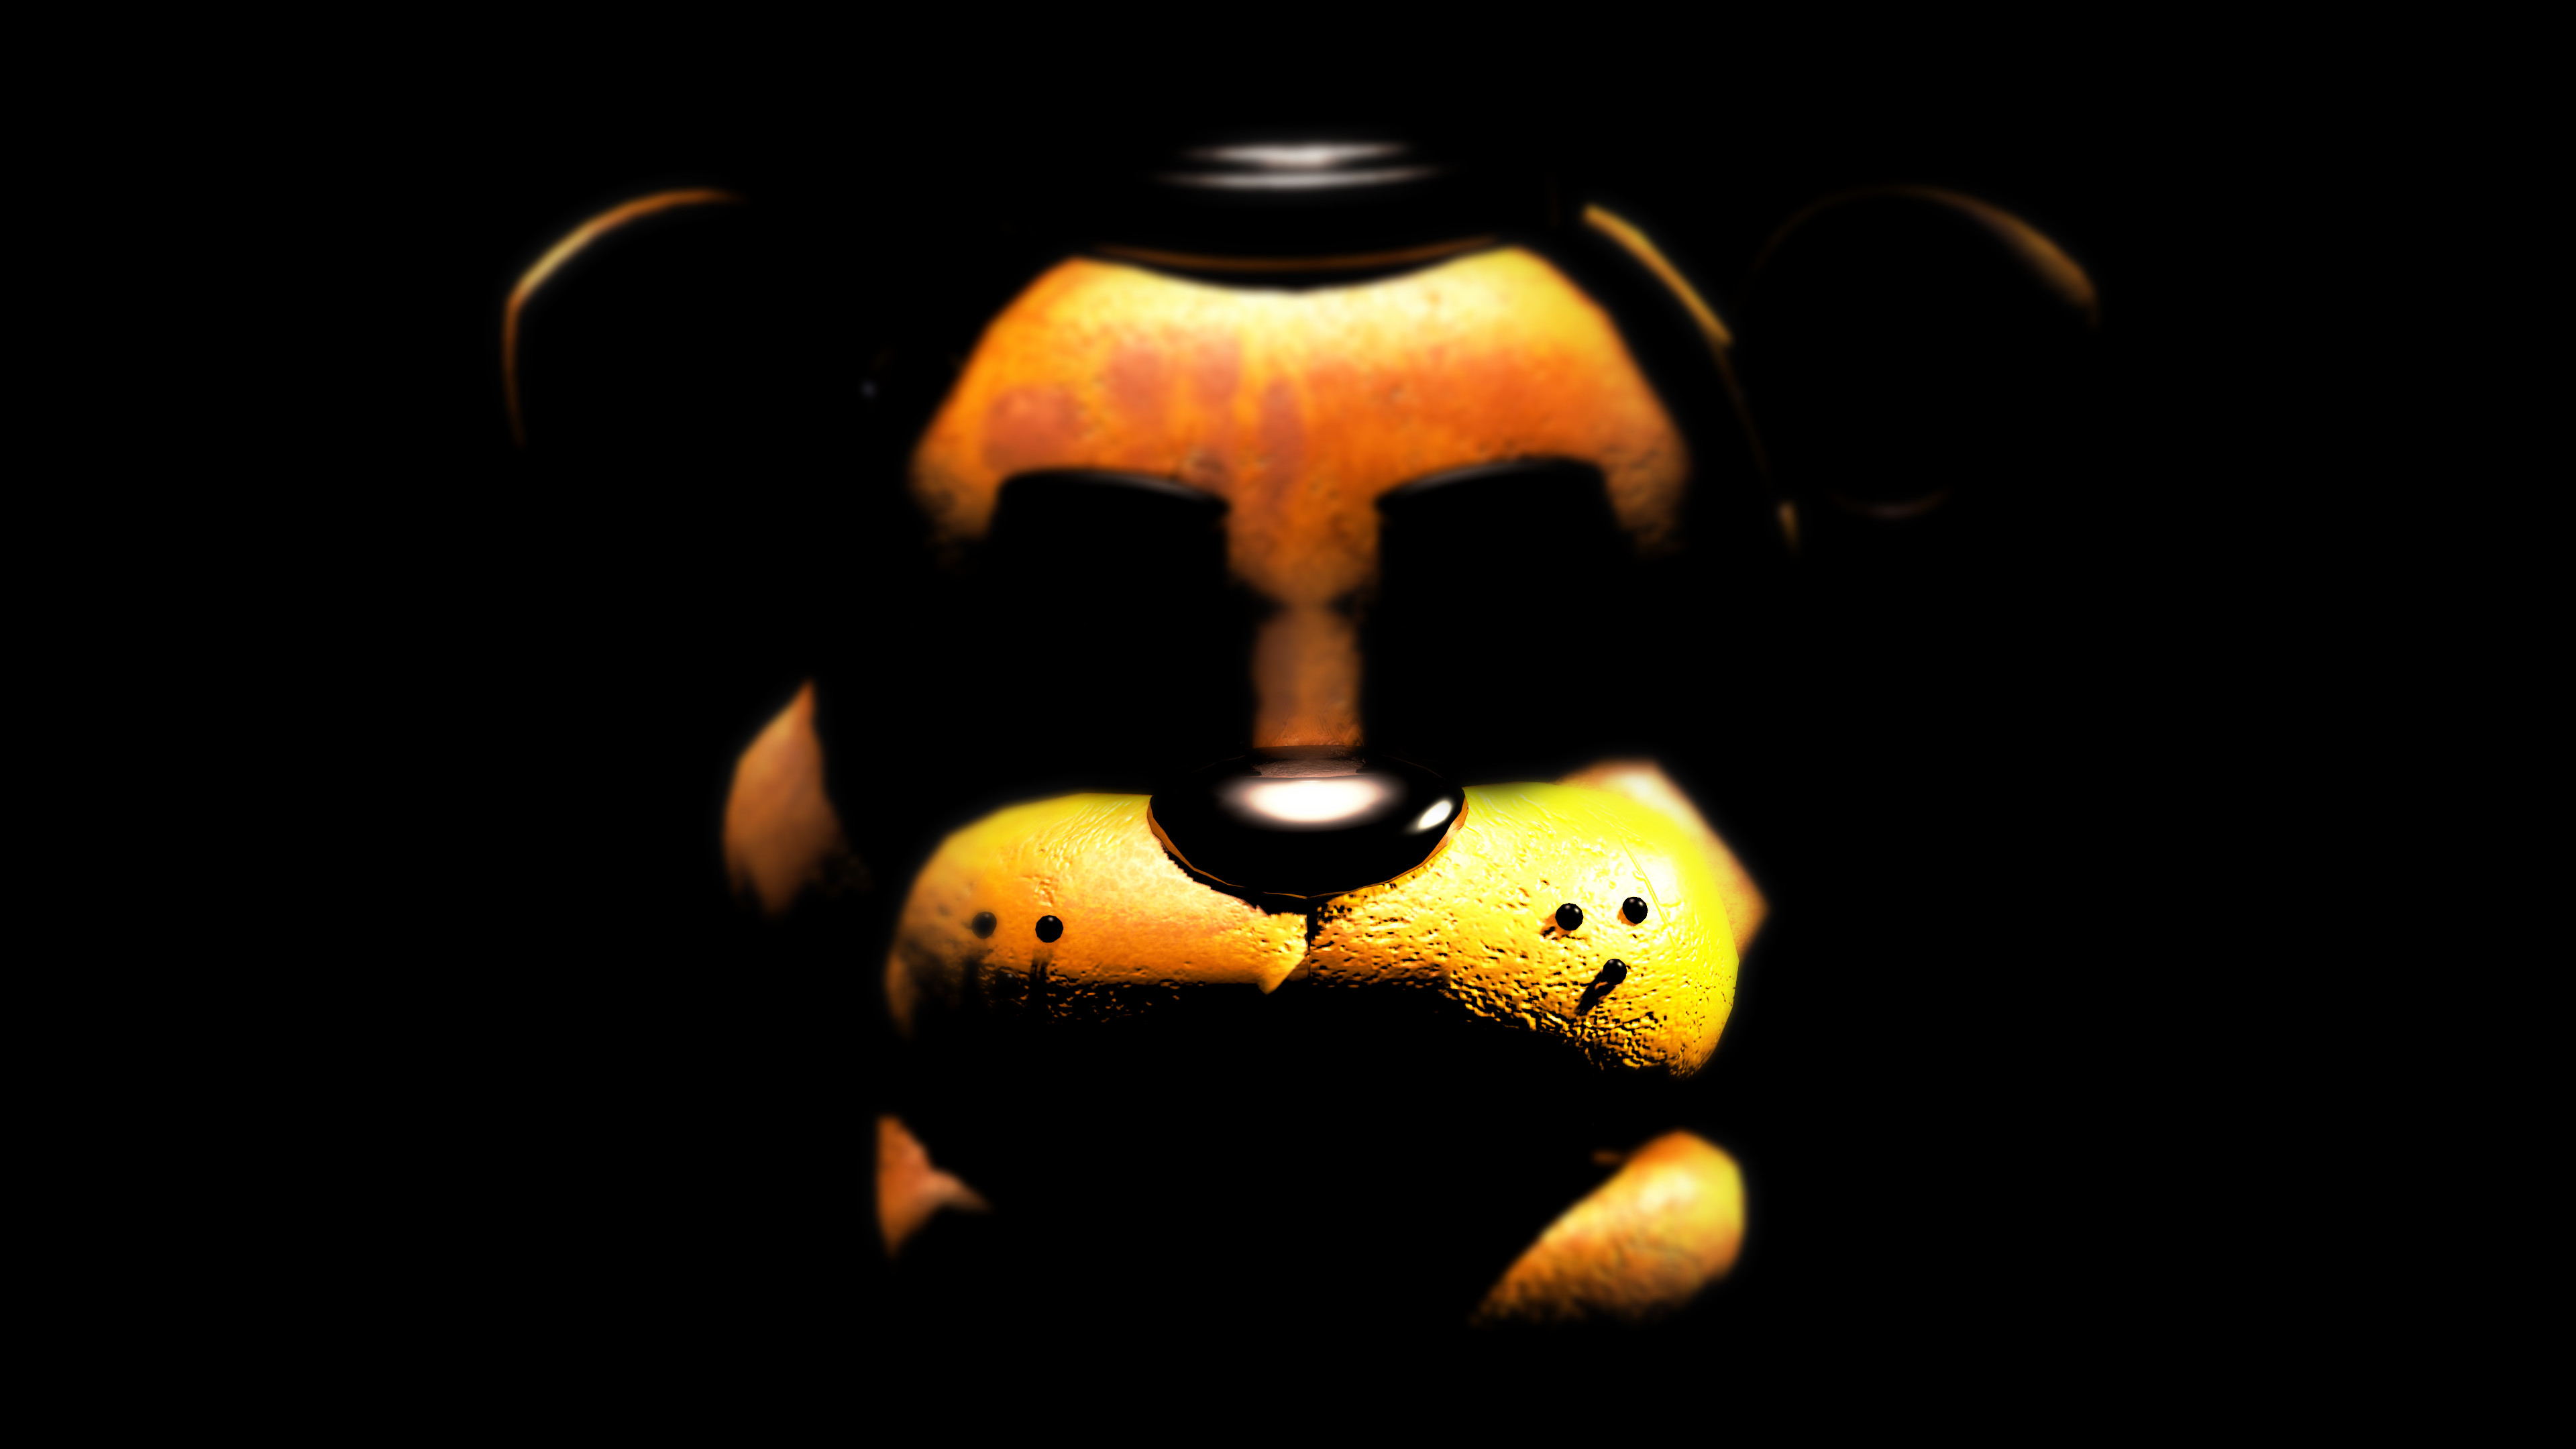 … Five Nights at Freddy's | Poster/Wallpaper #1 by GravityPro